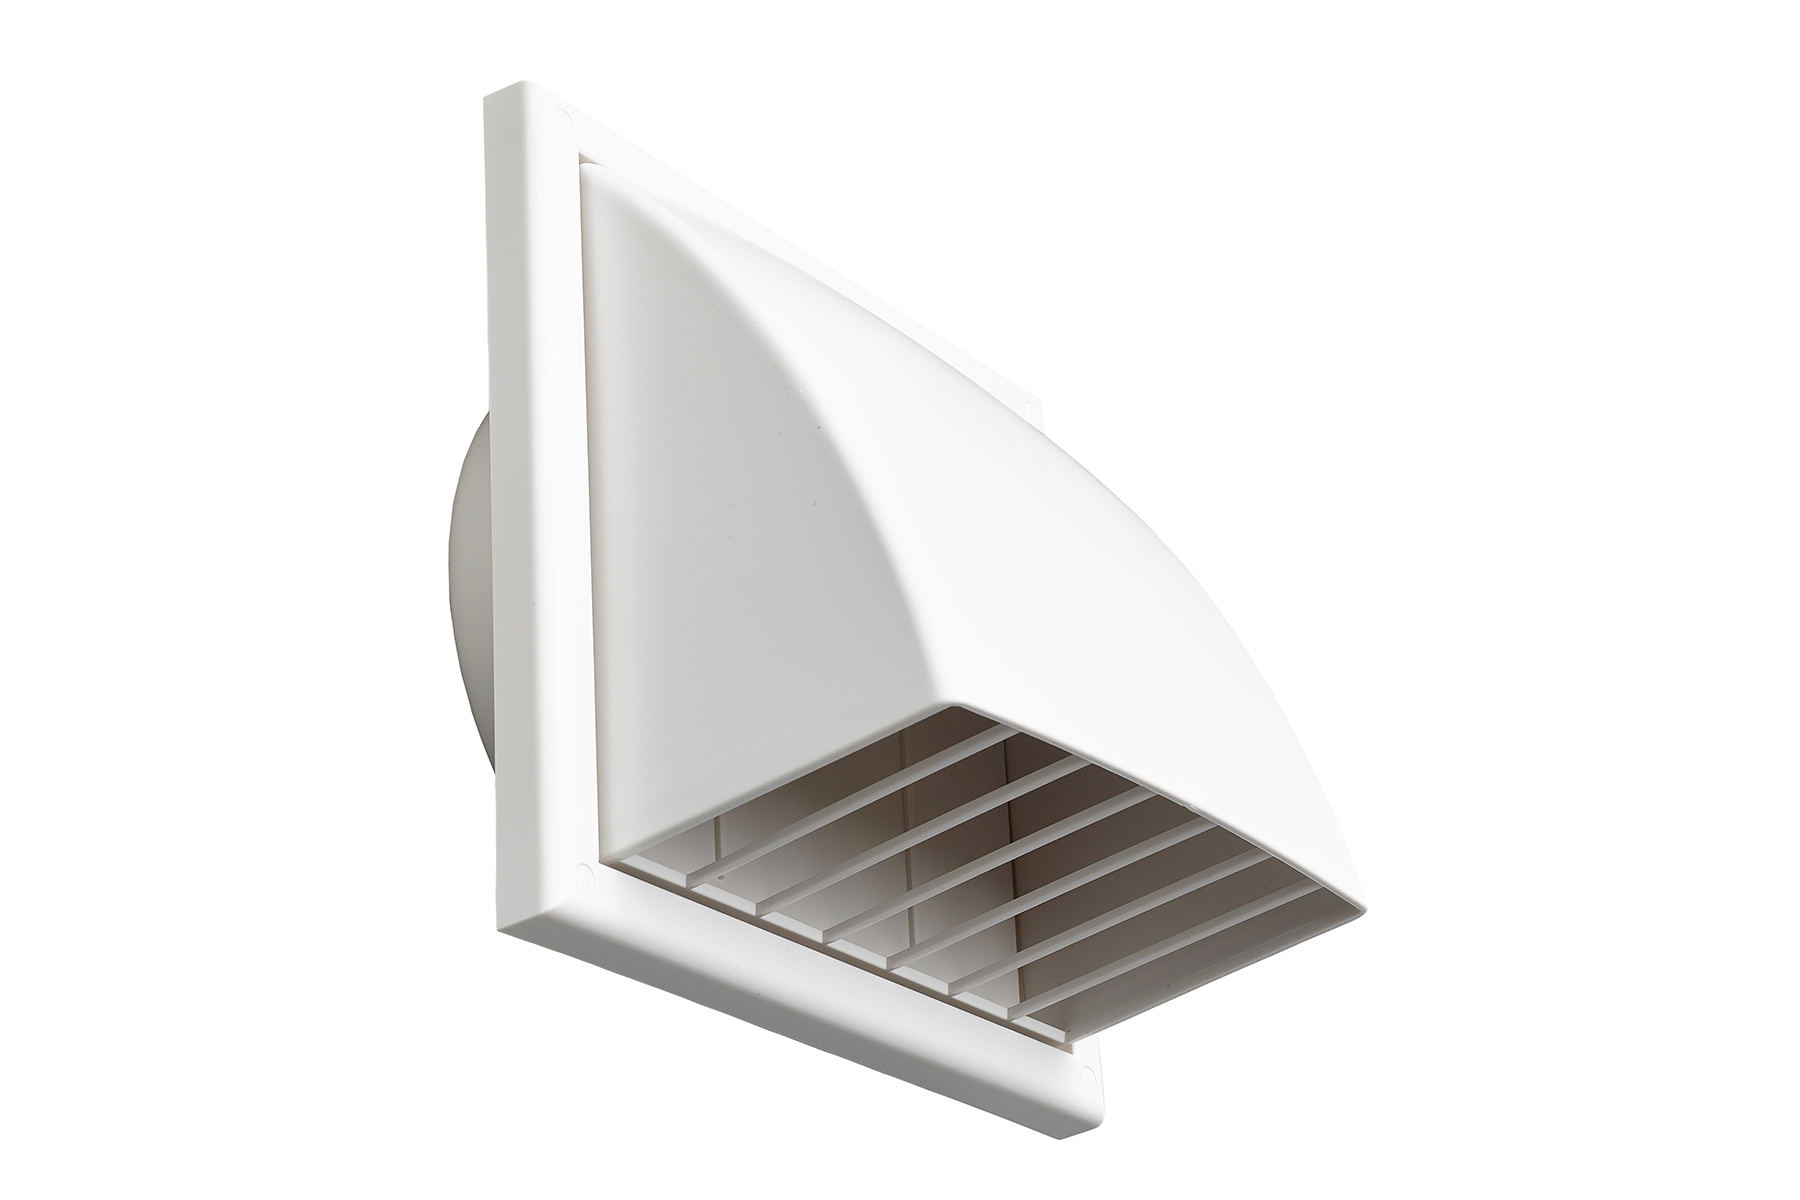 Wall Vent Weatherproof Cowl